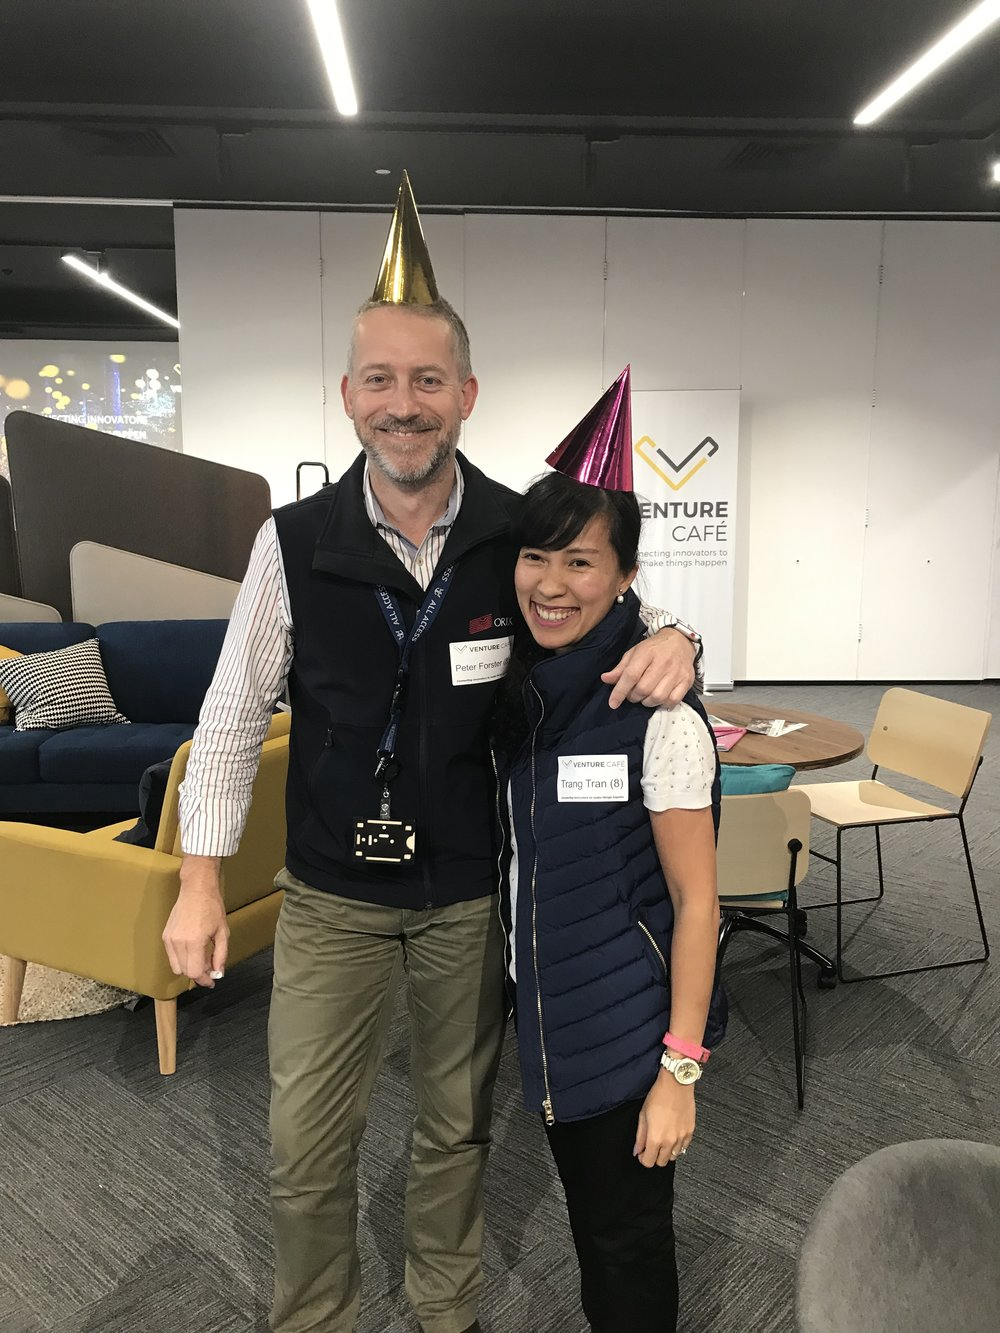 Celebrating Peter and Trang from ORIX - who have not missed a single VC Thursday! 8-for-8 weeks!